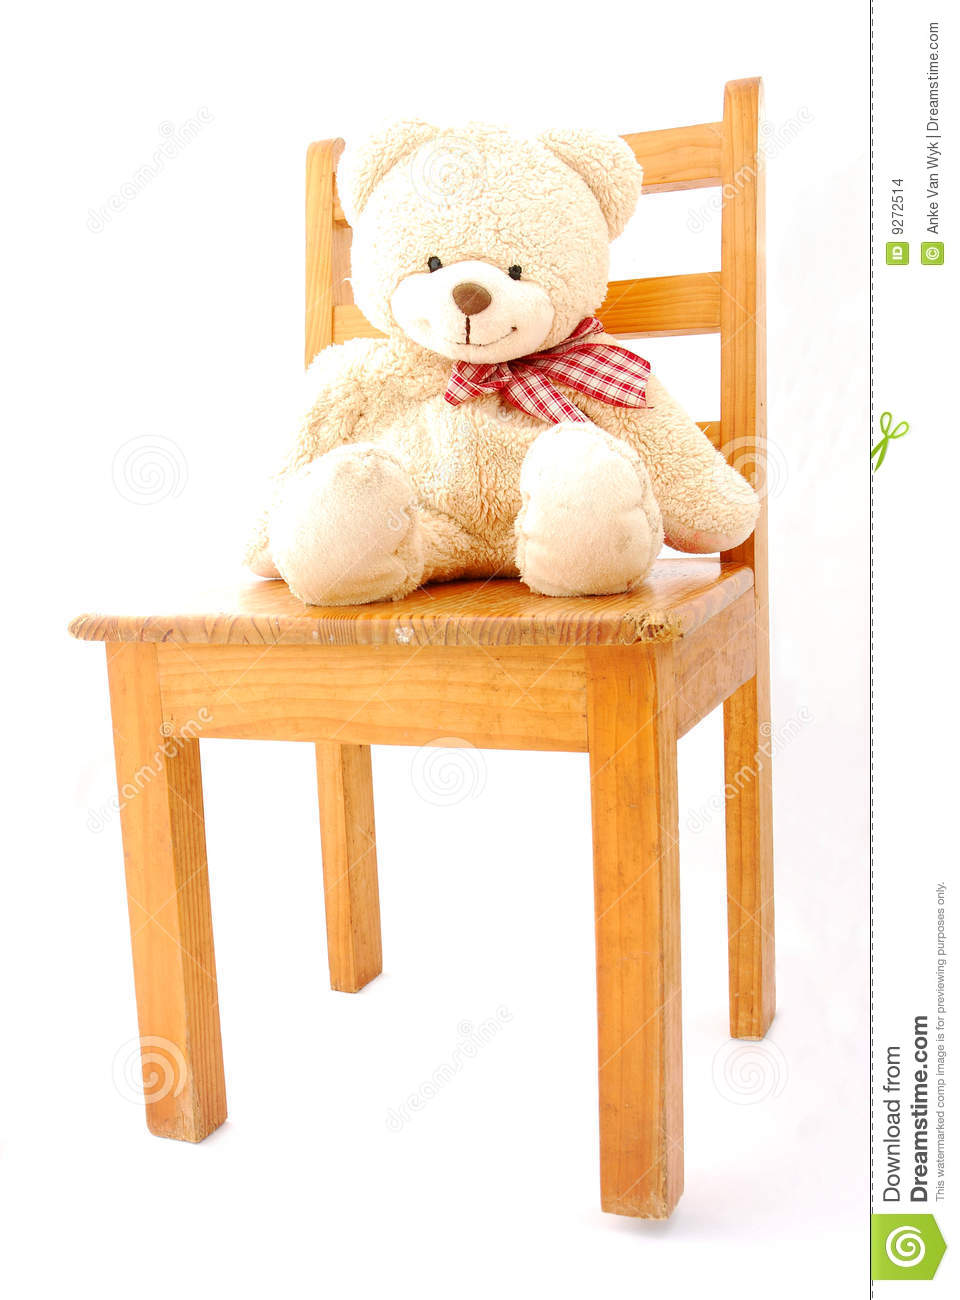 teddy bear on chair stock images image 9272514. Black Bedroom Furniture Sets. Home Design Ideas